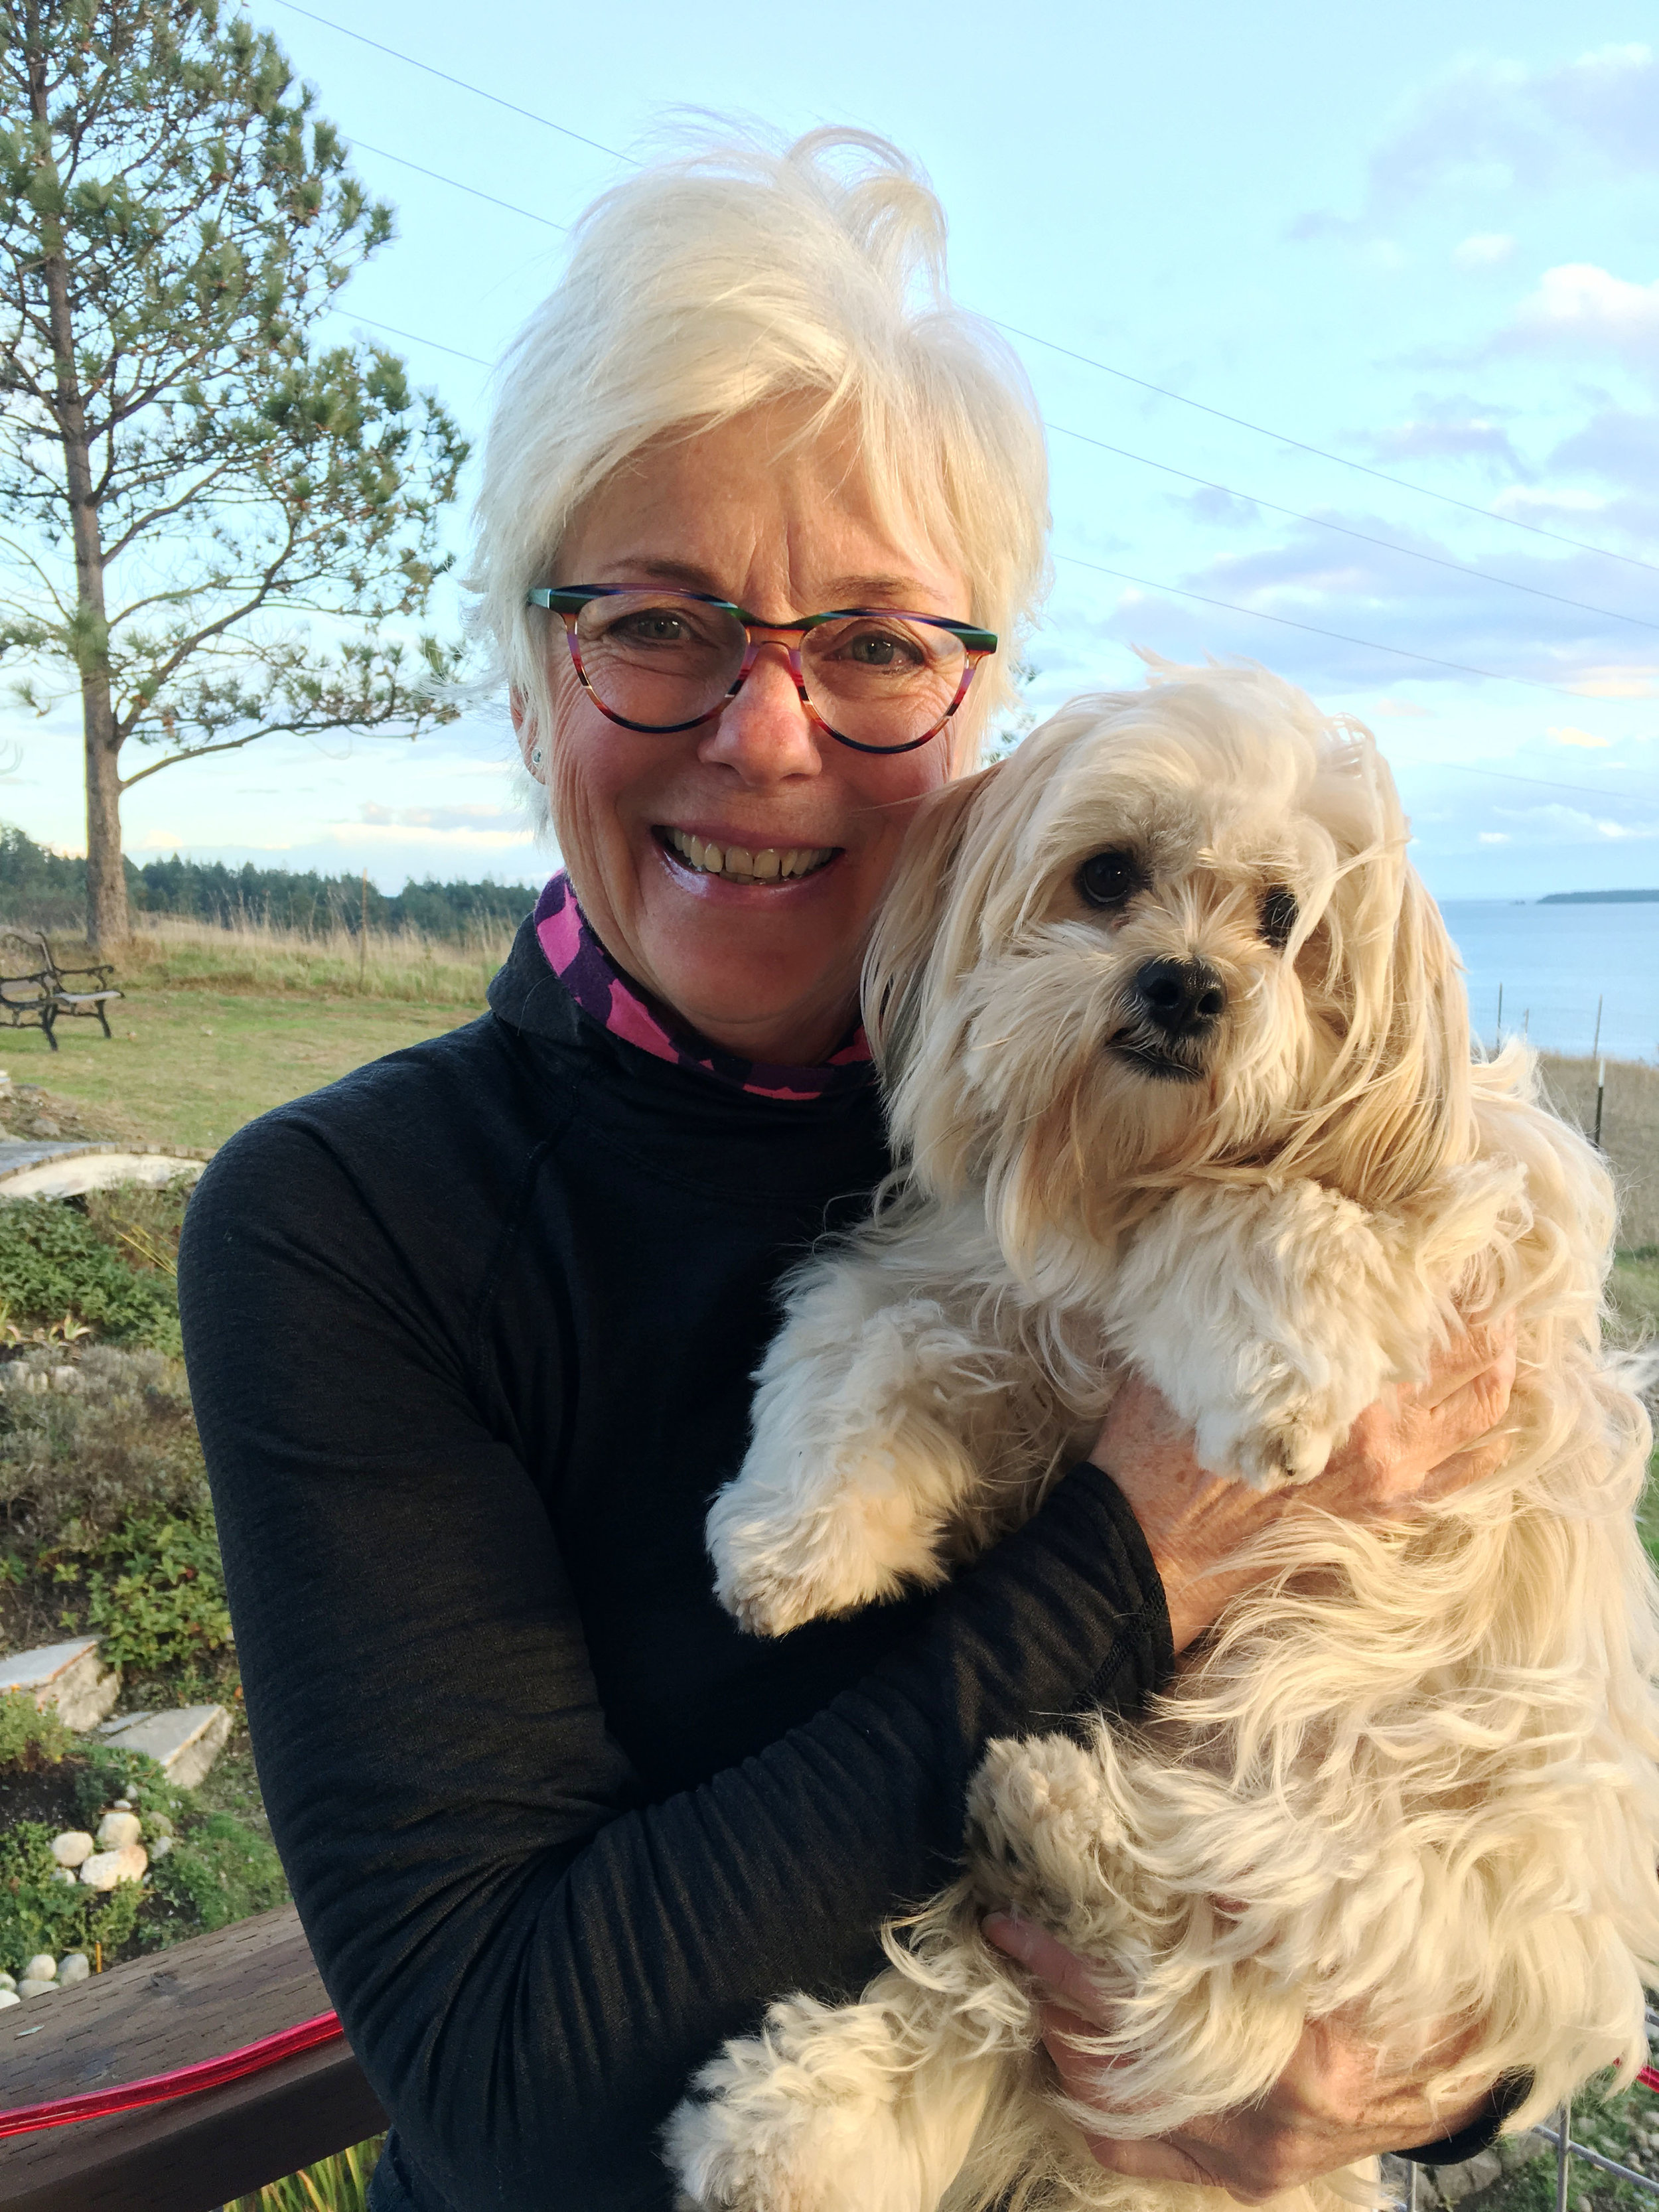 RA Cook and her dog, Stuart. Friday Harbor, Washington